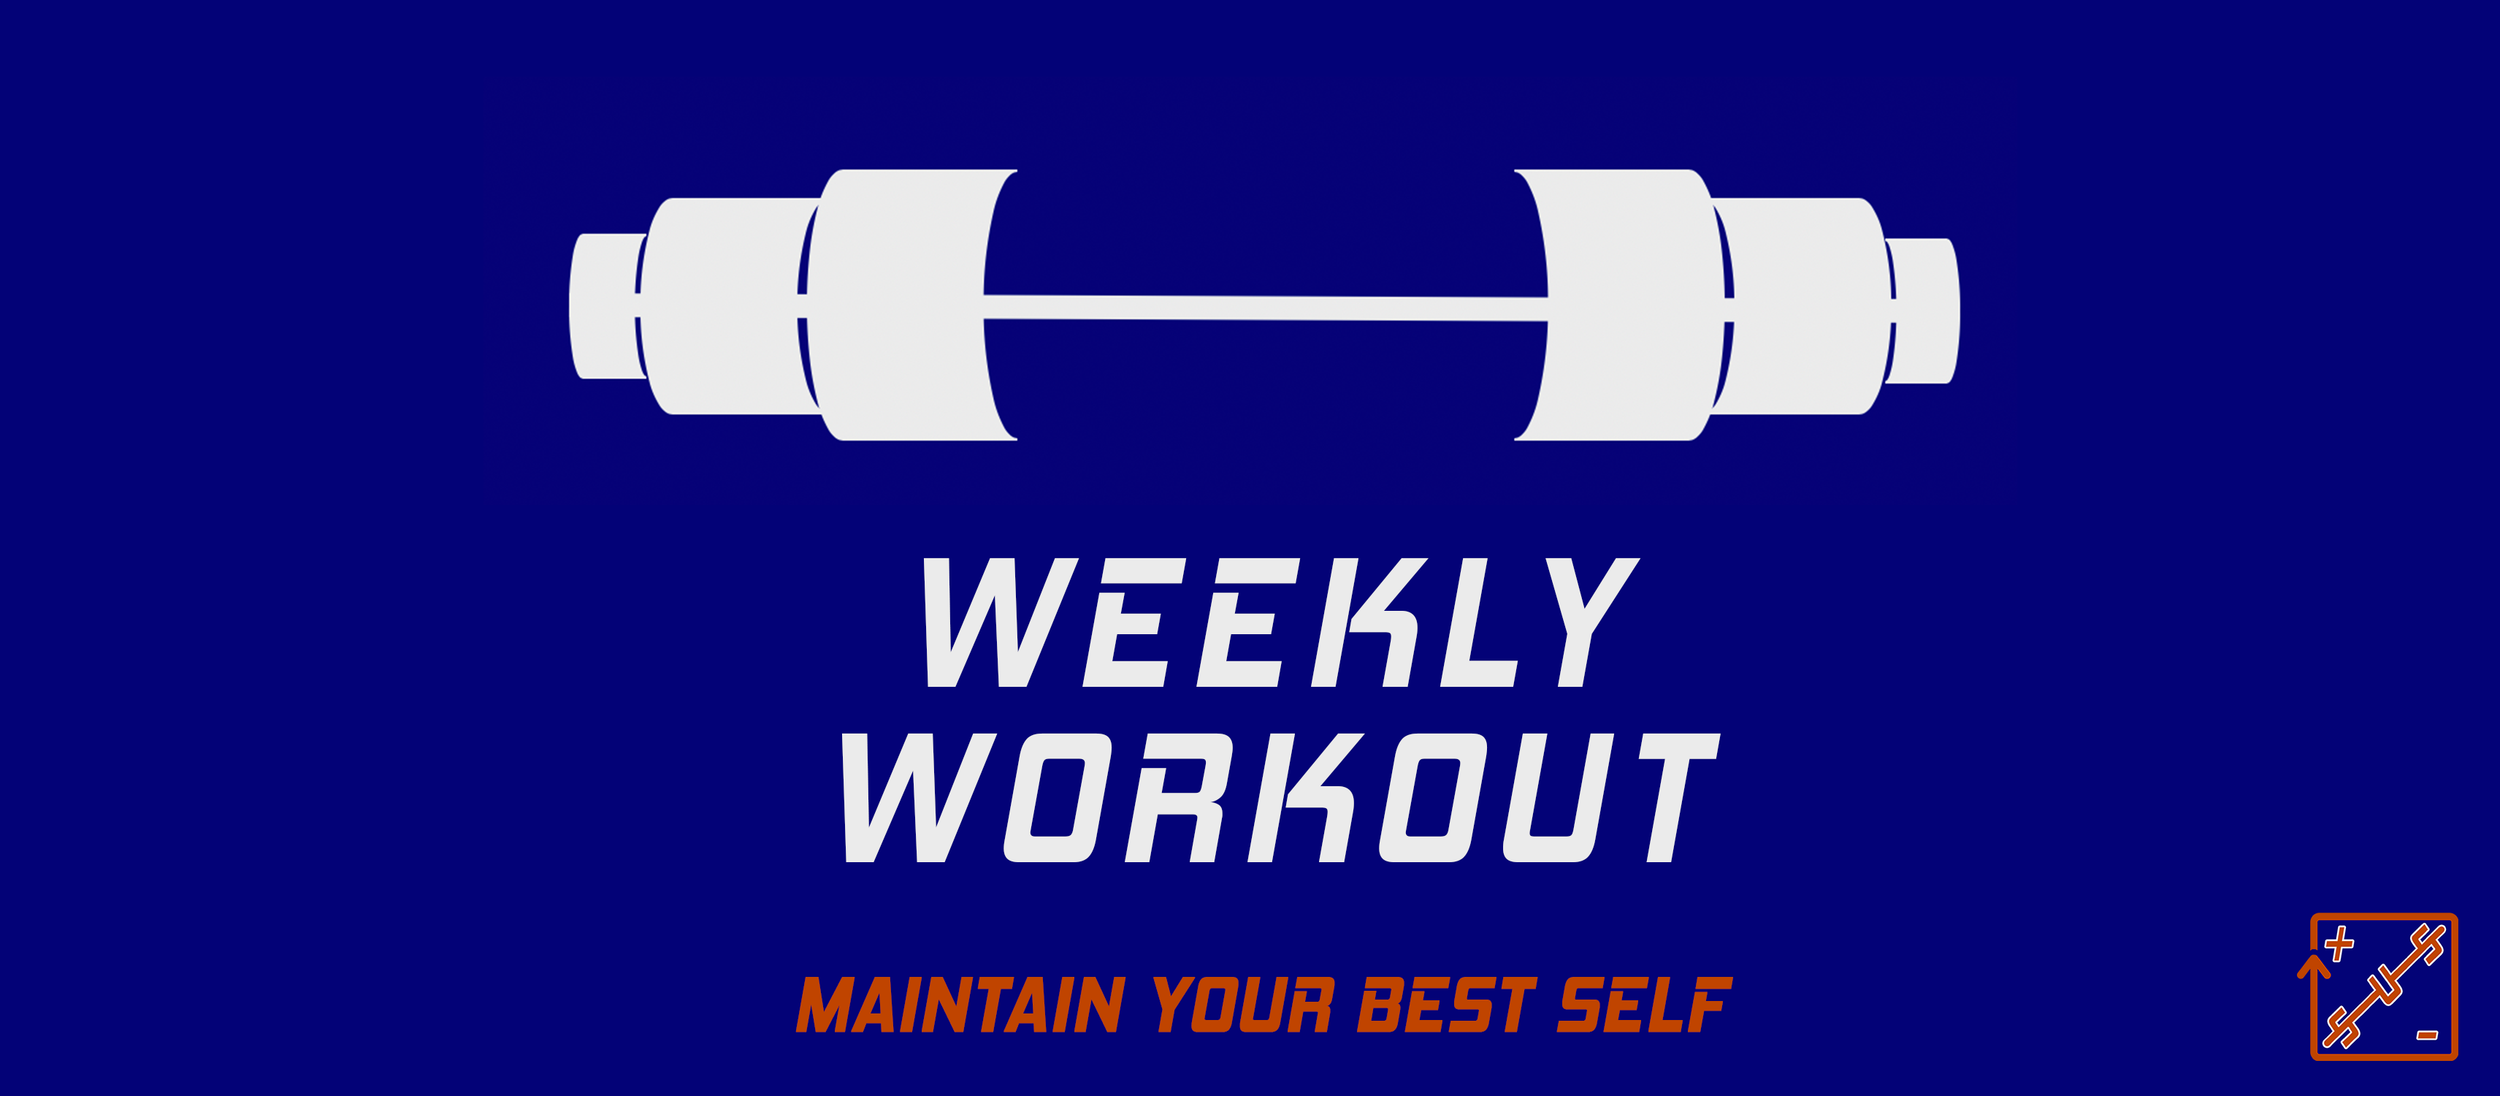 Weekly Workout.png